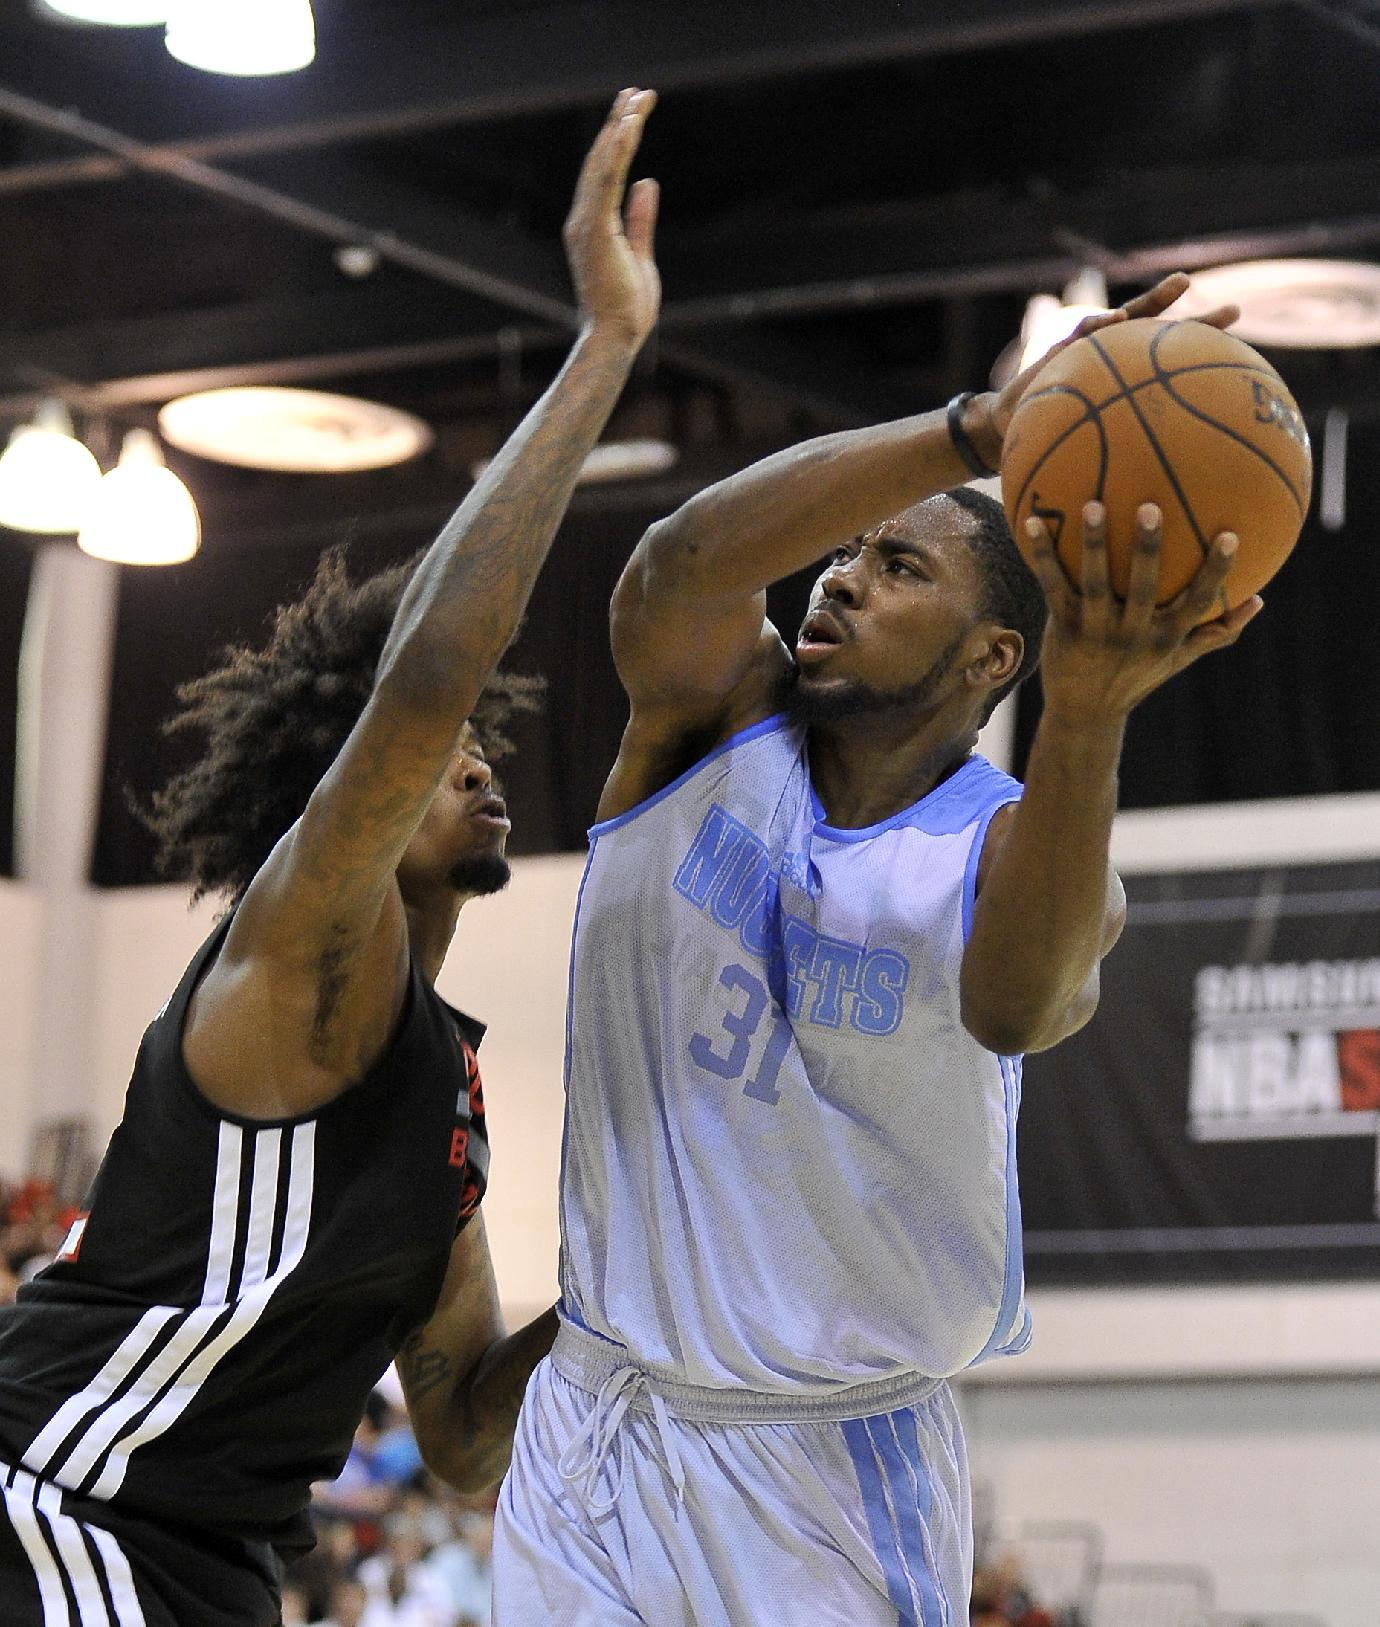 Denver Nuggets' Denzel Bowles (31) shoots against Toronto Raptors' Lucas Nogueira during an NBA summer league basketball game on Saturday, July 12, 2014, in Las Vegas. The Nuggets won 110-82